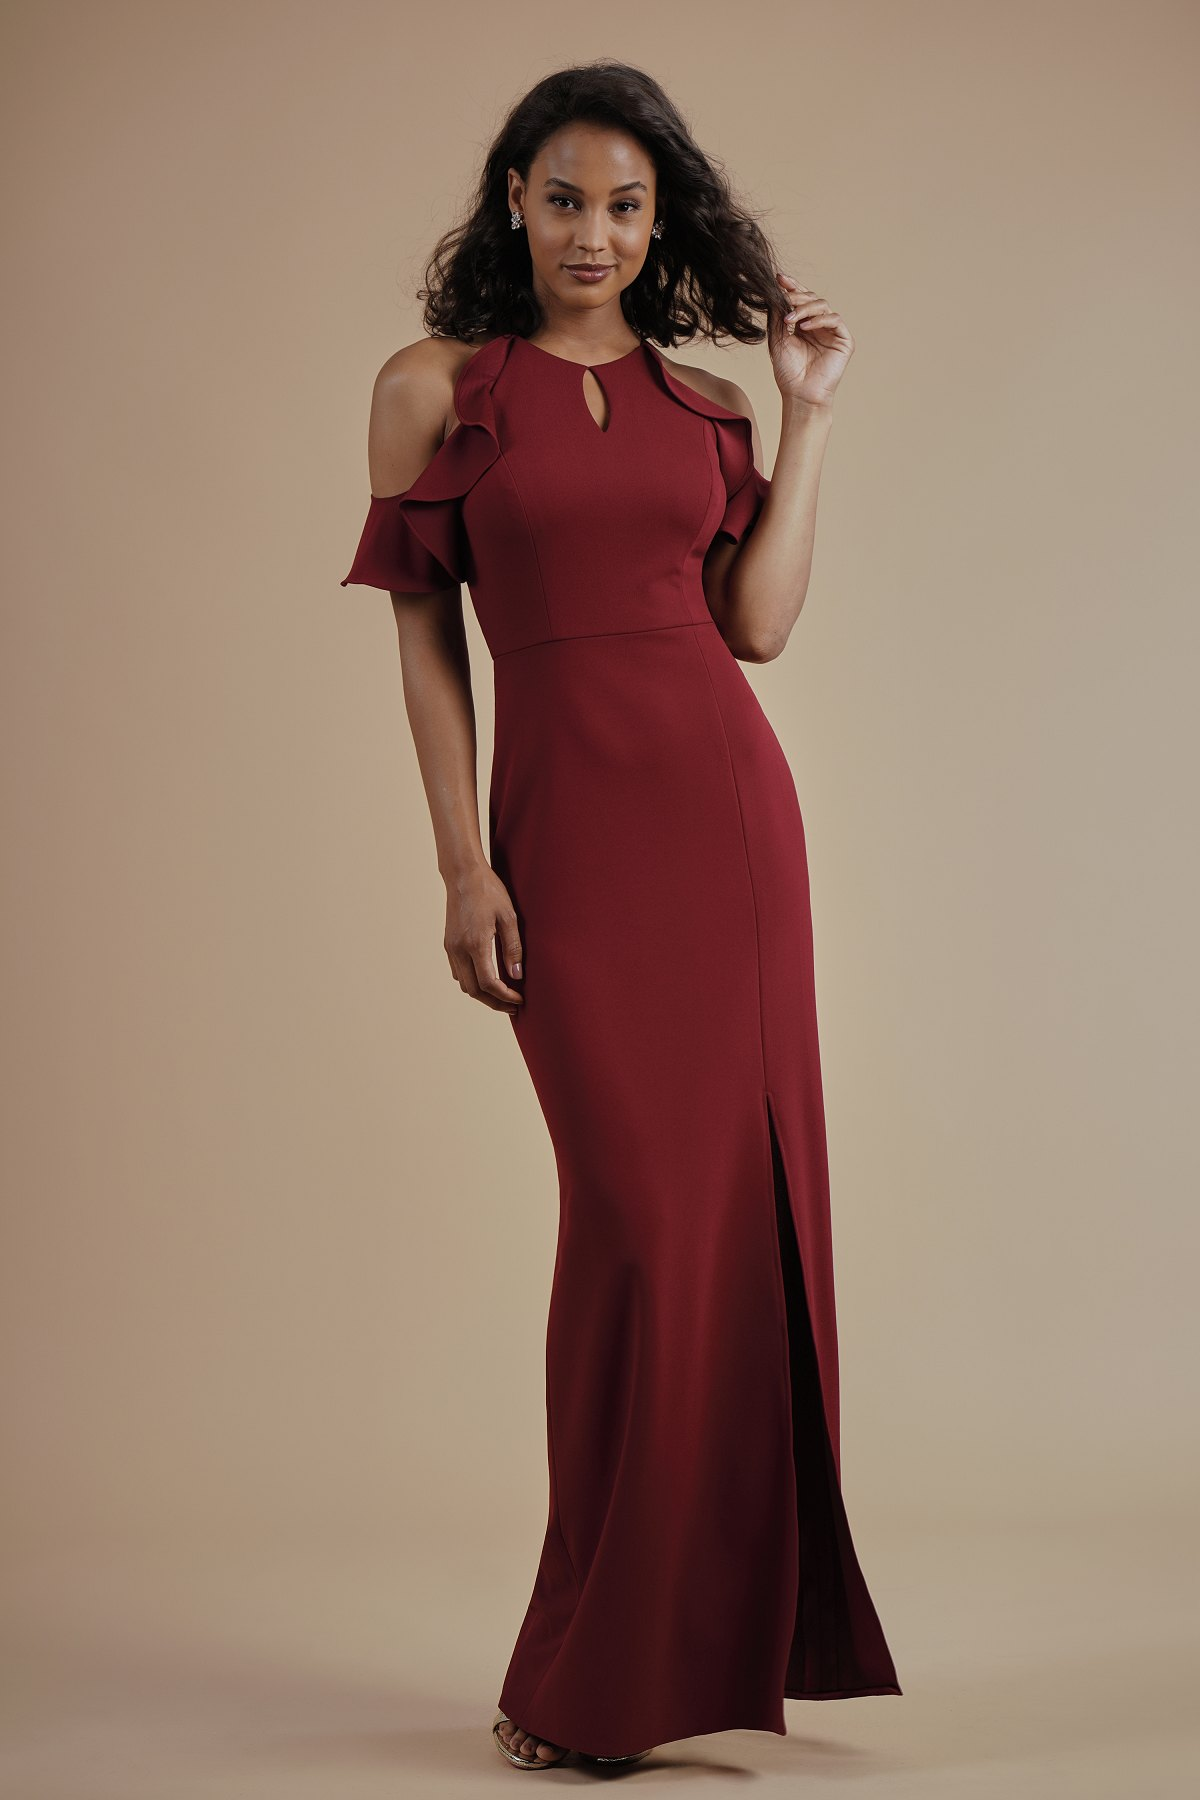 L214014 -  Pretty stretch crepe floor length bridesmaid dress with a jewel neckline and keyhole design. A high neck back, cold shoulder ruffled sleeves, and a front slit to complete the look      Available in 21 colors